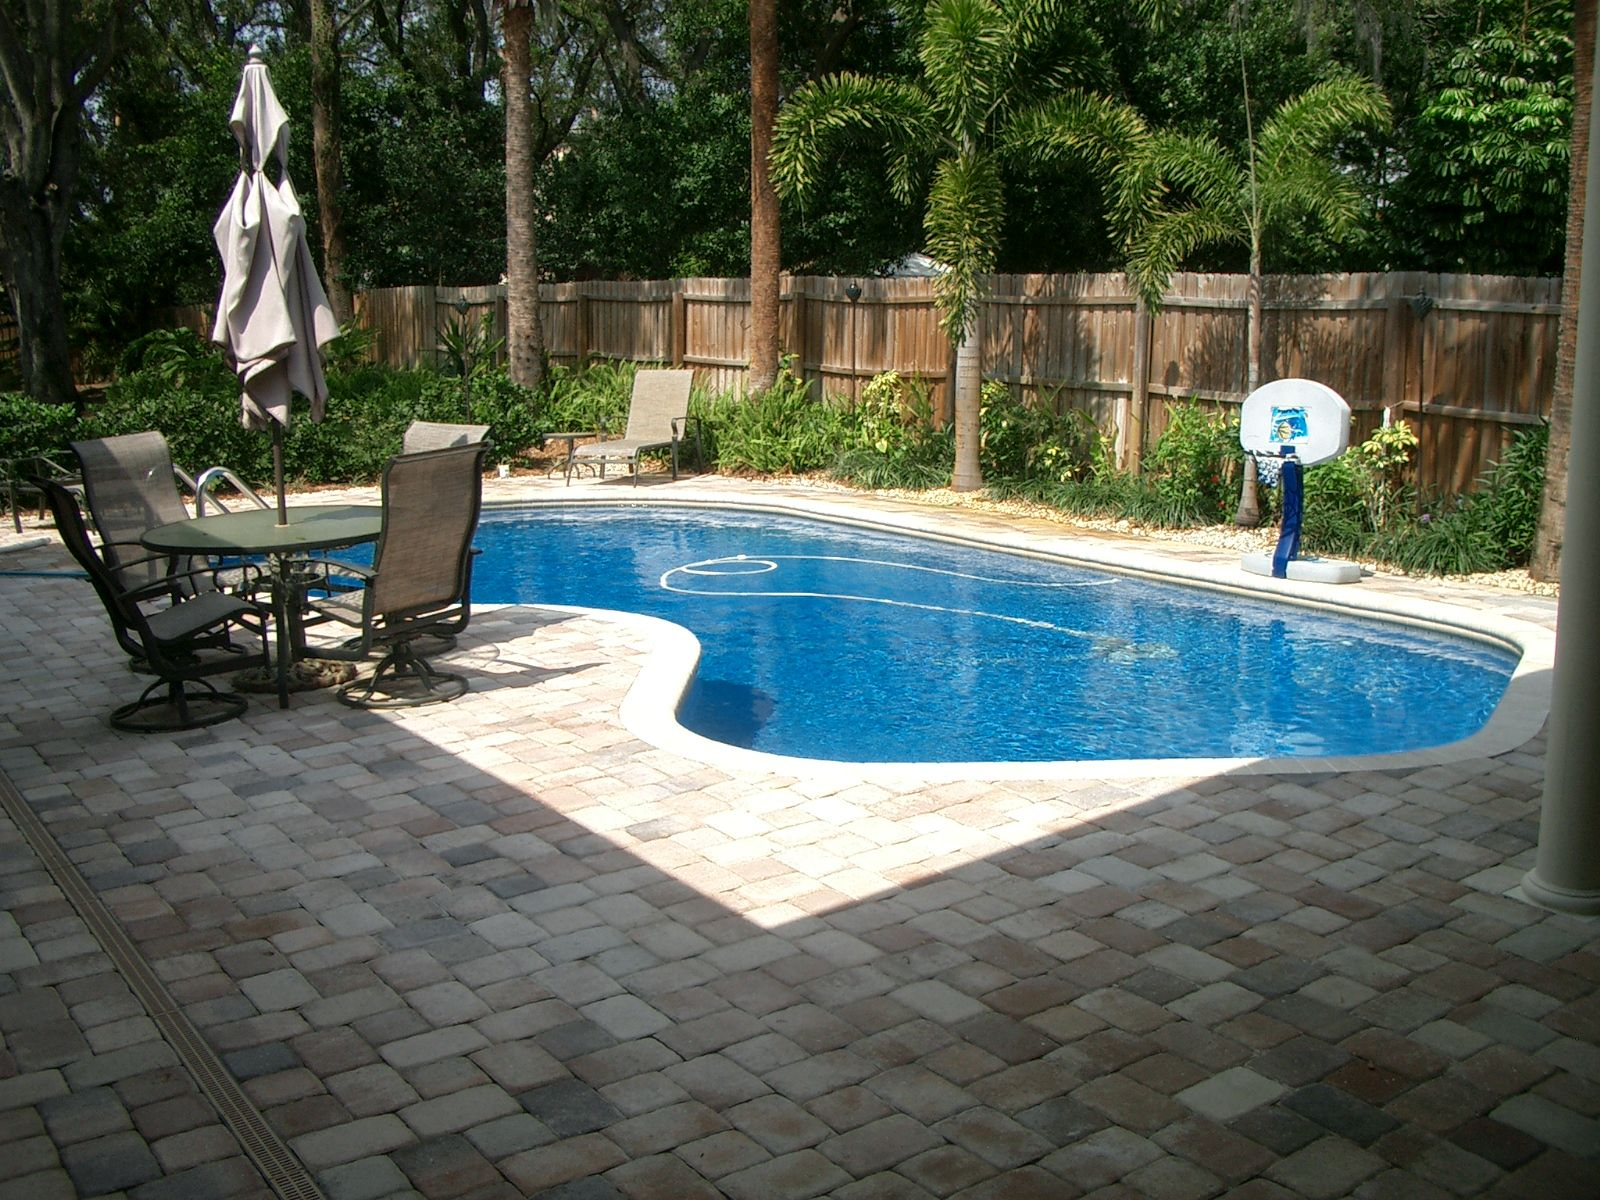 Backyard Backyard Pool Landscaping Pool Landscape Design Pool Landscaping